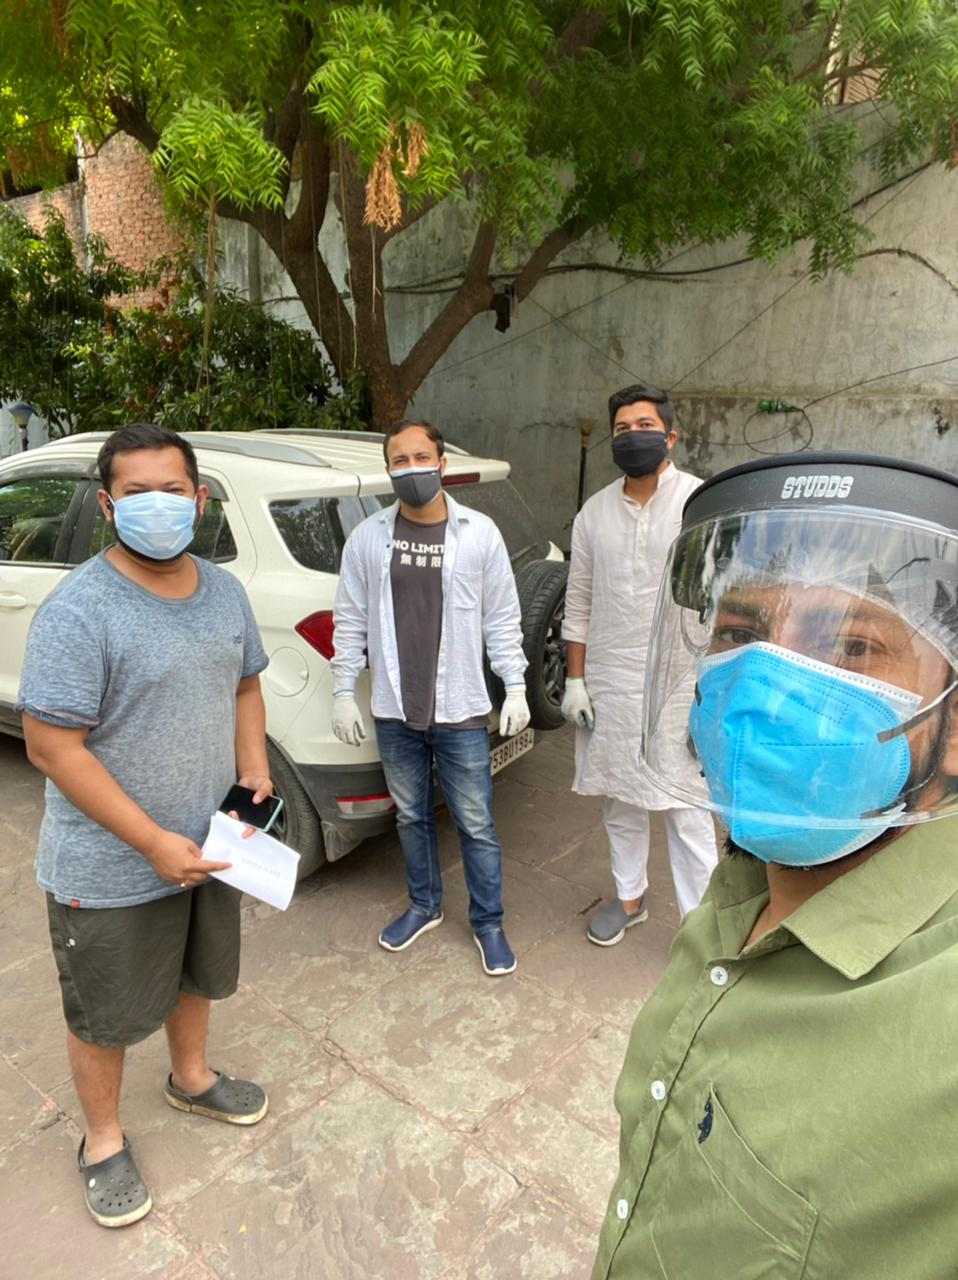 Lucknow Covid warriors urge 'Madad Karona' as they launch war against pandemic